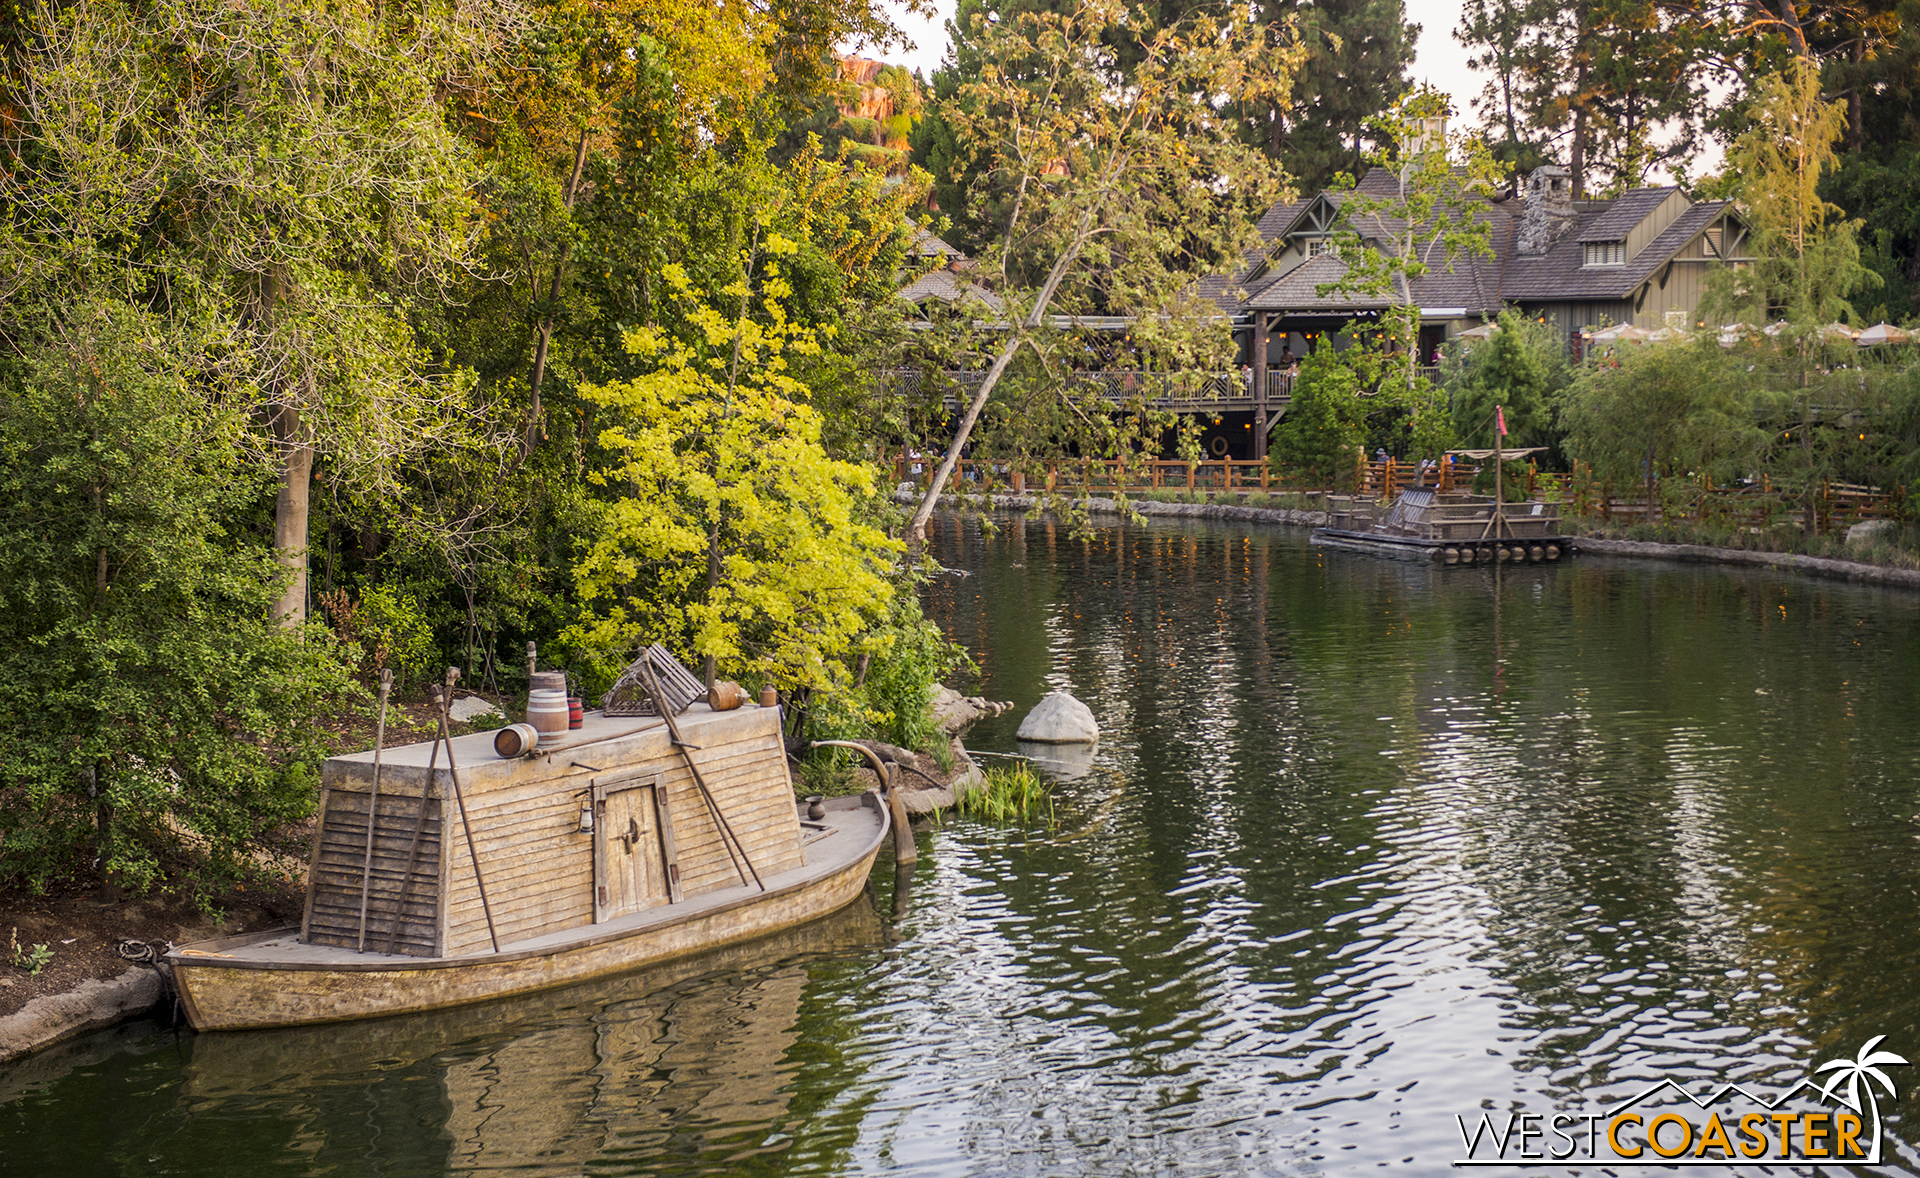 Looking across the water, we see an old keel boat tied up along Tom Sawyer Island.